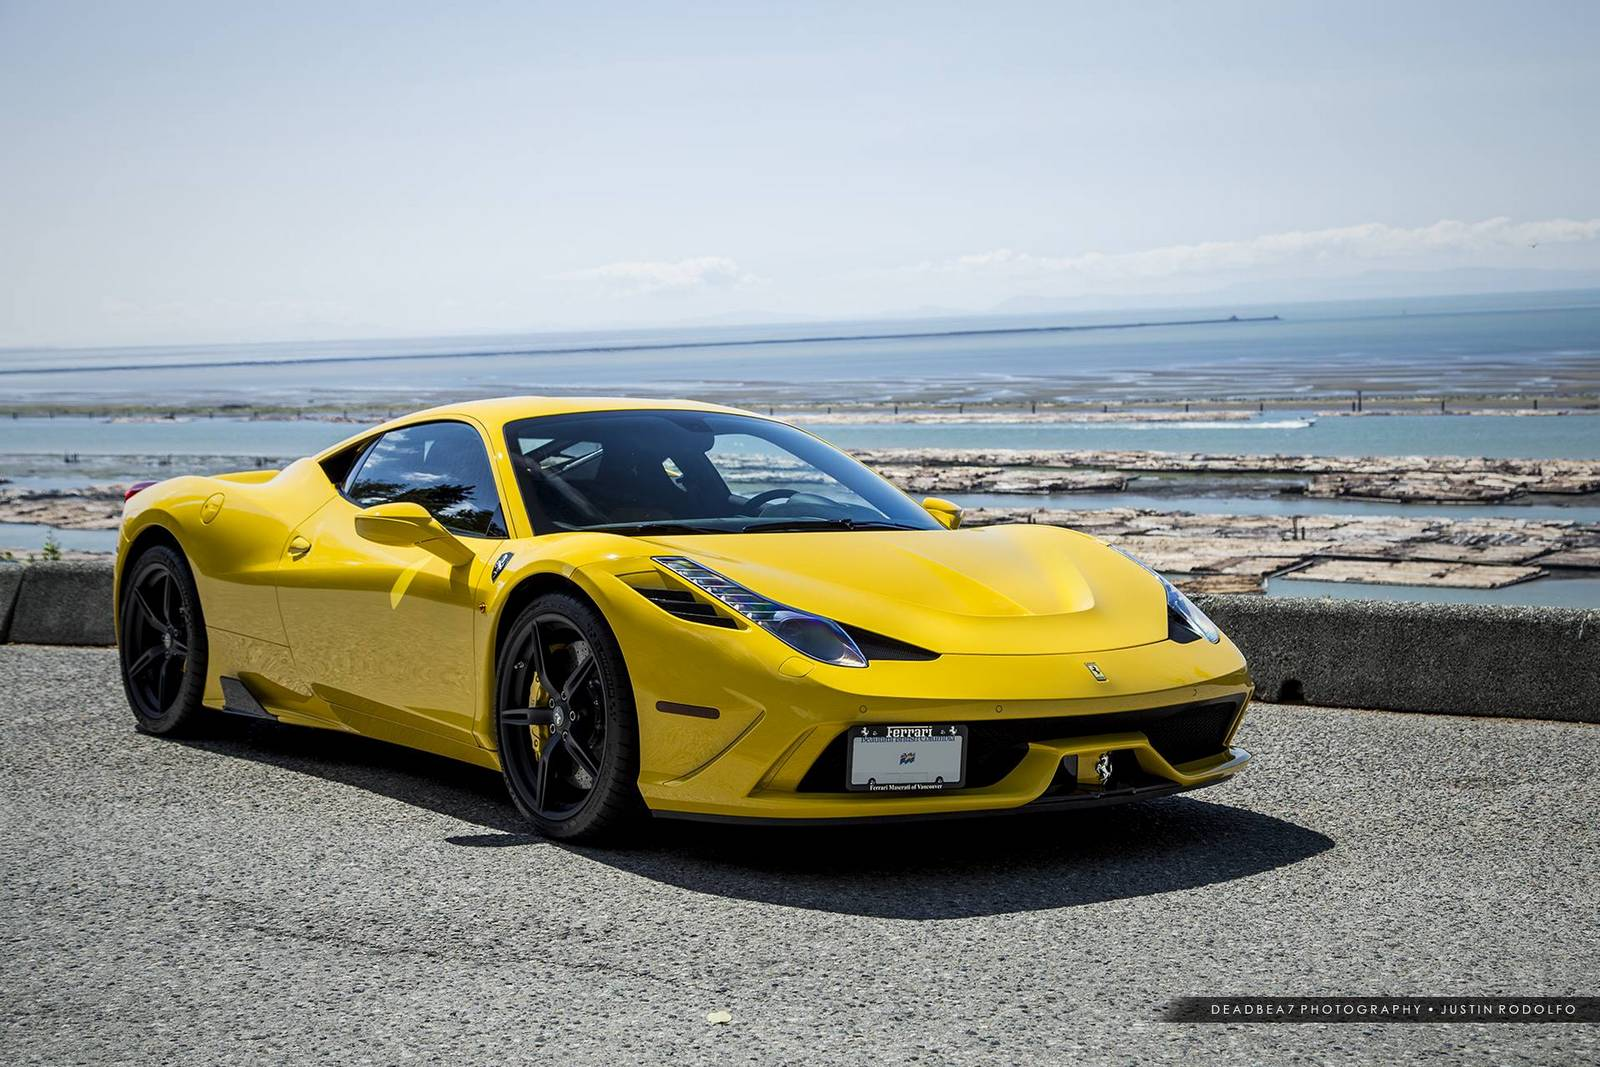 amazing ferrari 458 speciale photoshoot by the sea gtspirit. Black Bedroom Furniture Sets. Home Design Ideas